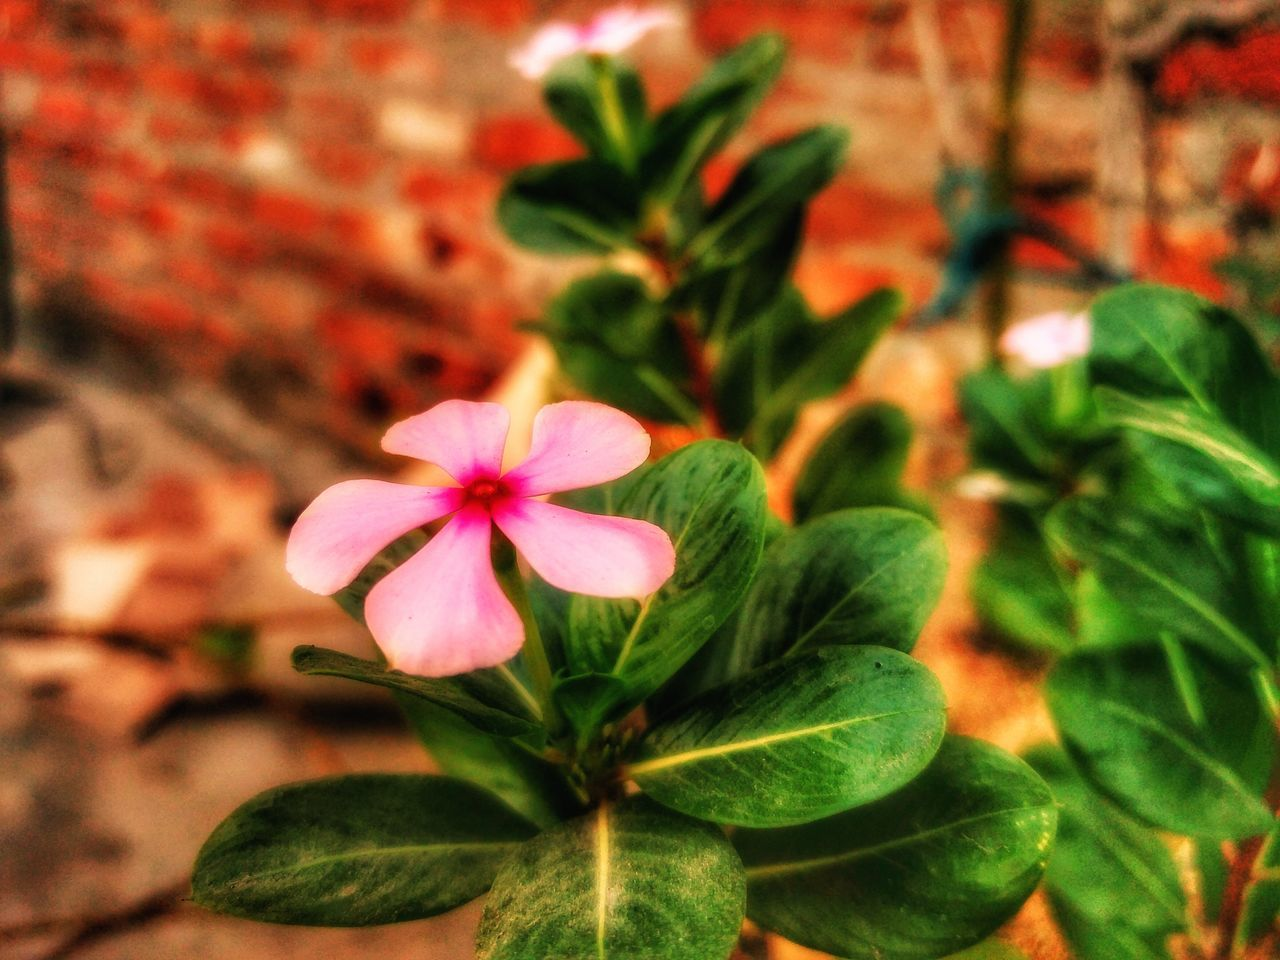 flower, growth, petal, flower head, leaf, freshness, blooming, pink color, plant, fragility, green color, periwinkle, beauty in nature, nature, focus on foreground, no people, close-up, day, outdoors